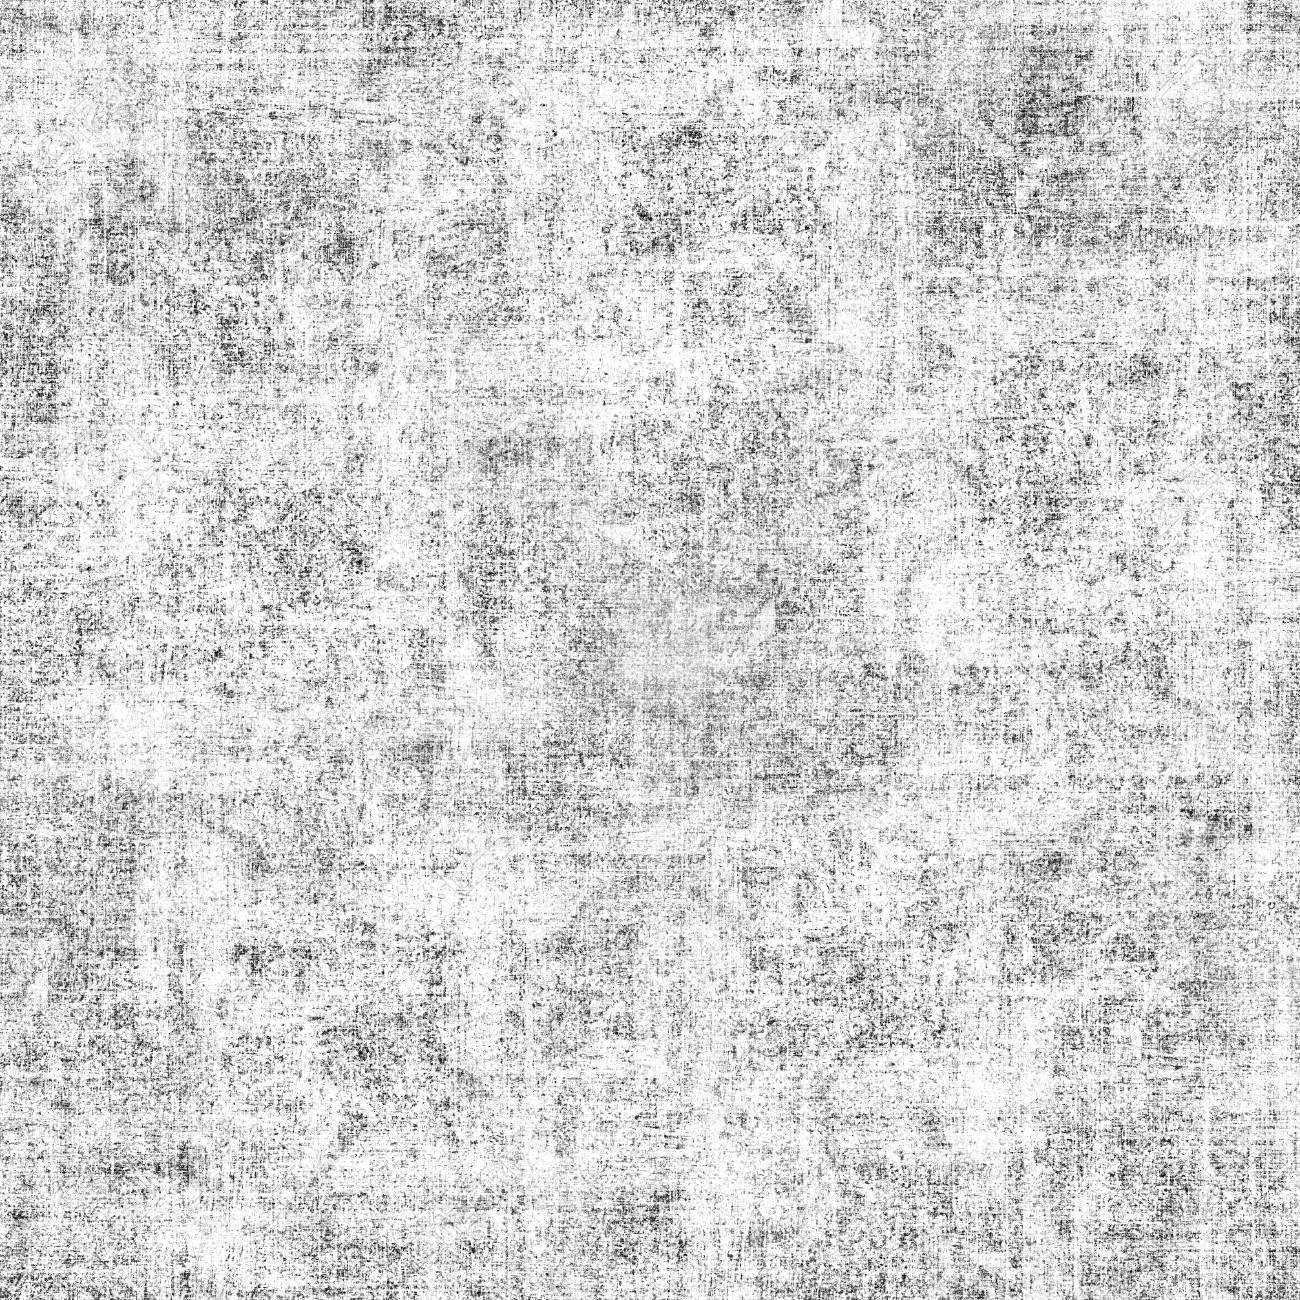 Black And White Monochrome Old Grunge Vintage Weathered Background 1300x1300